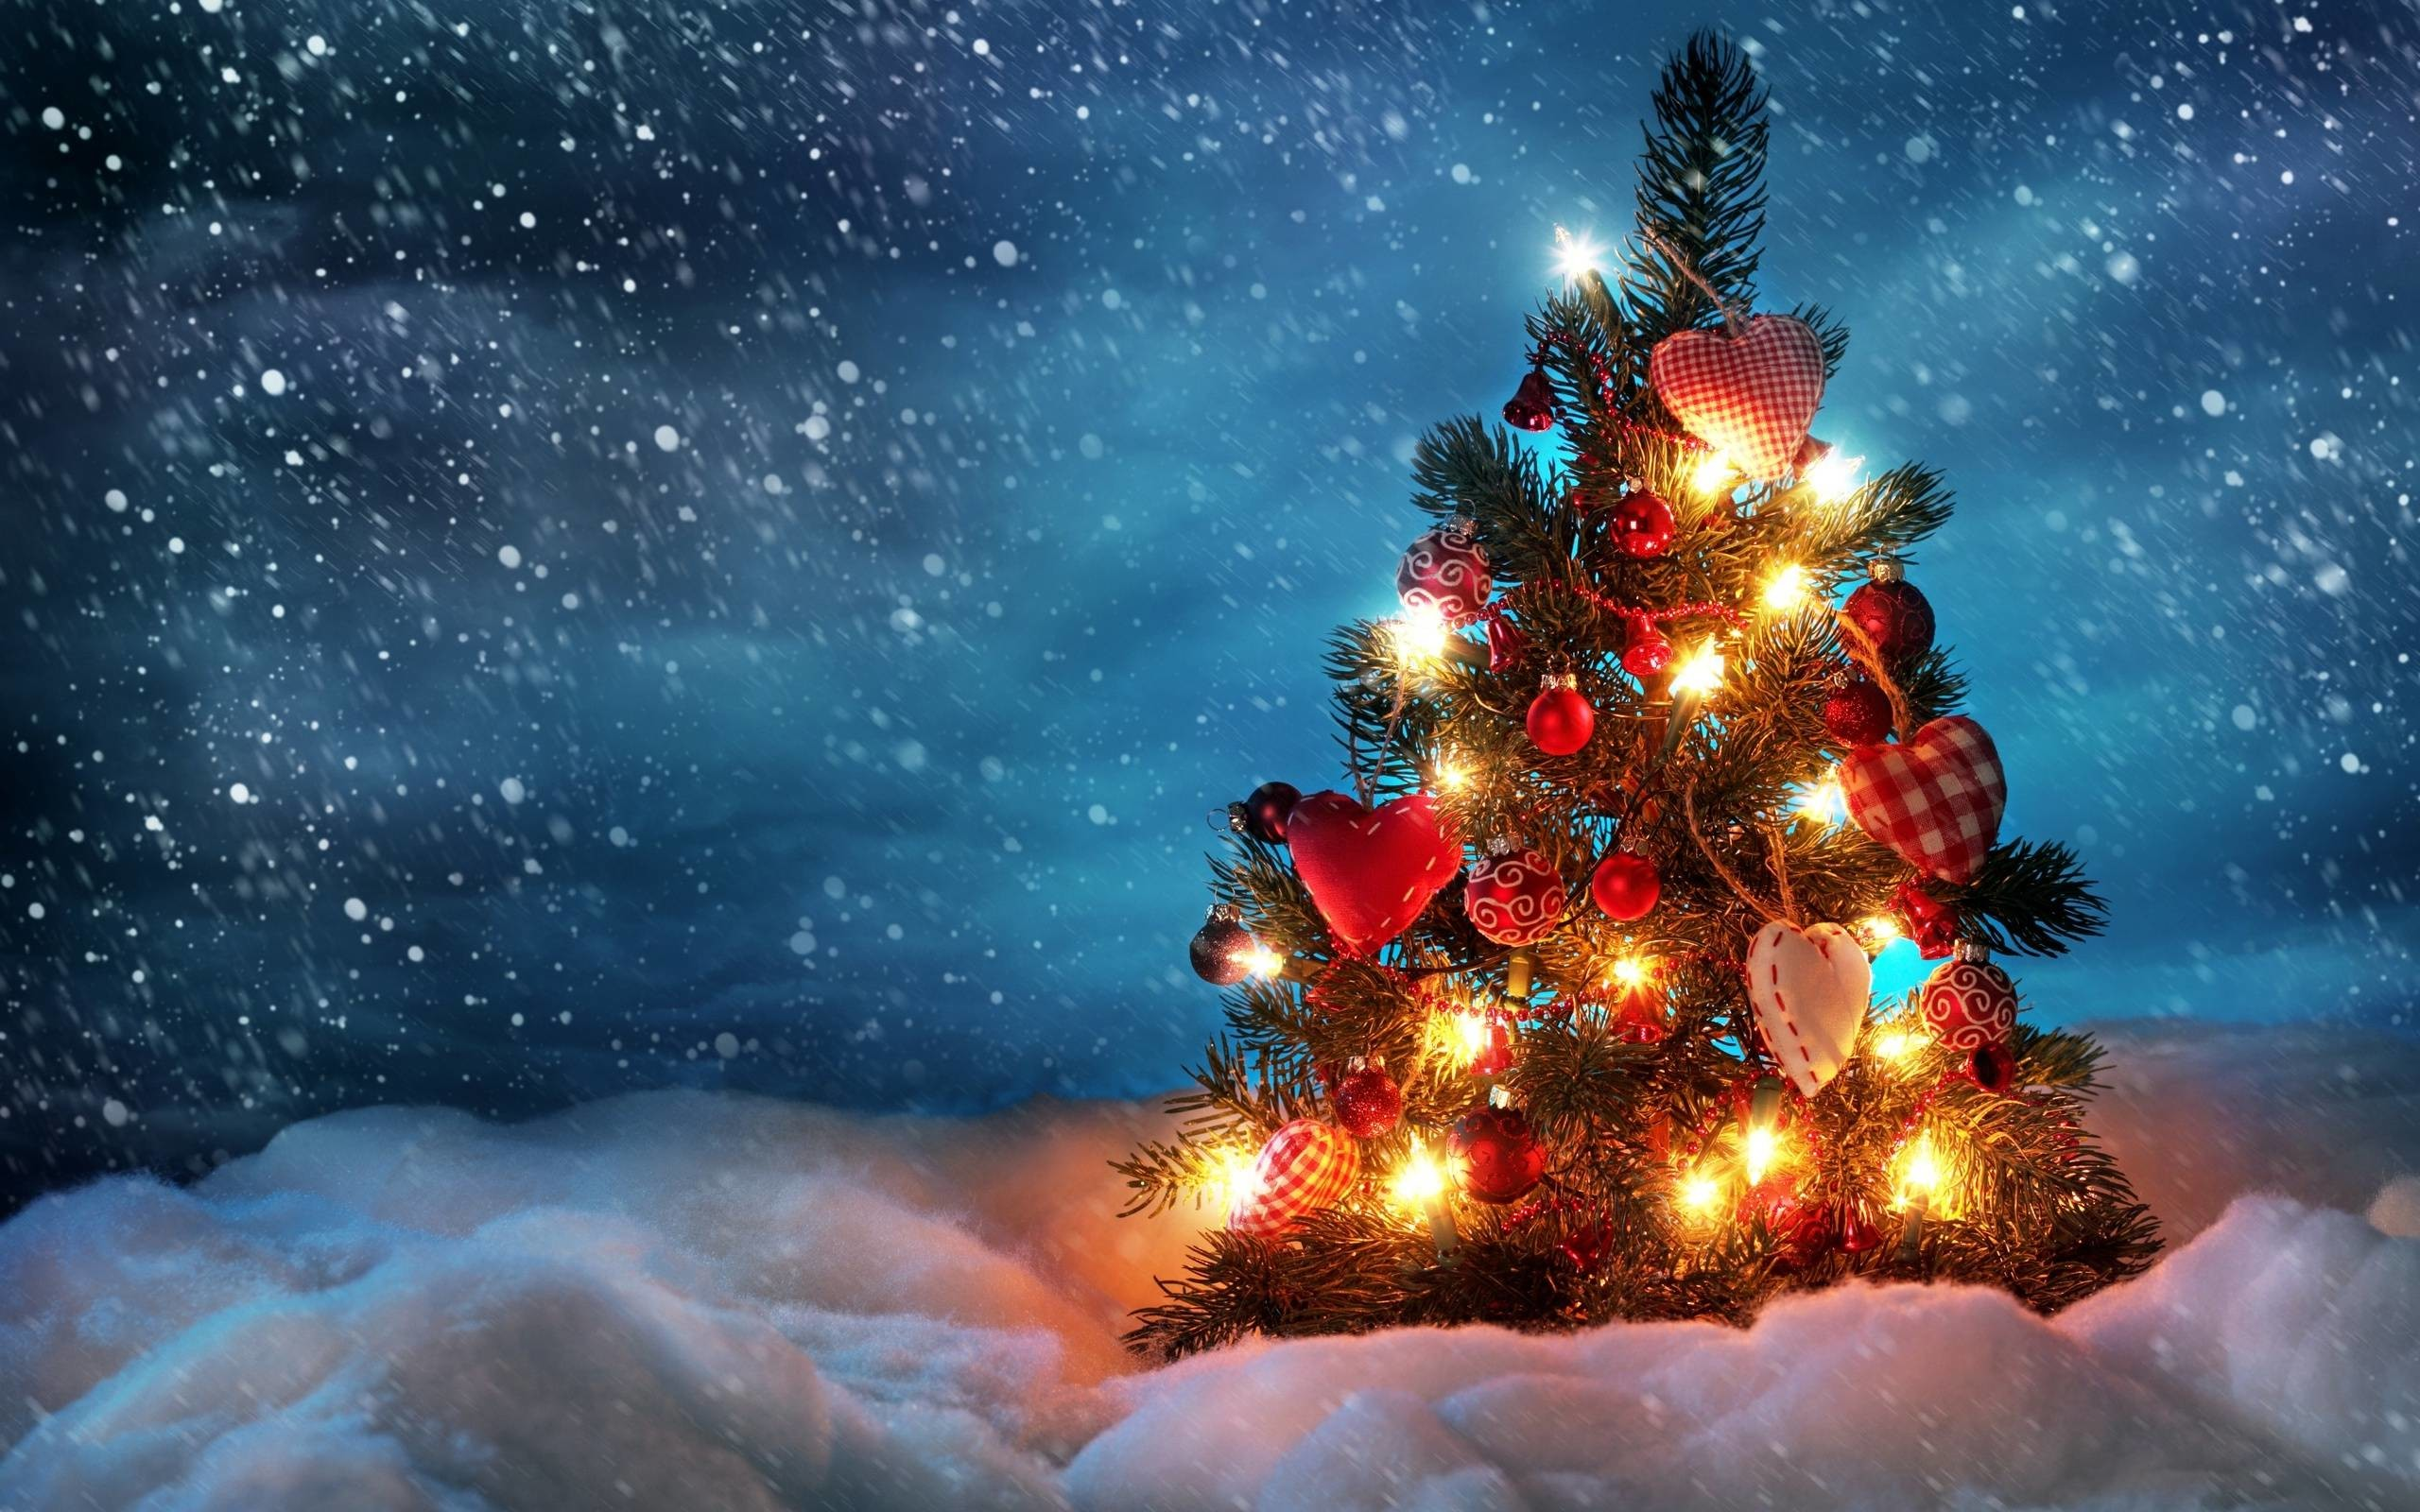 705019 most popular snowy christmas backgrounds 2560x1600 for ipad pro